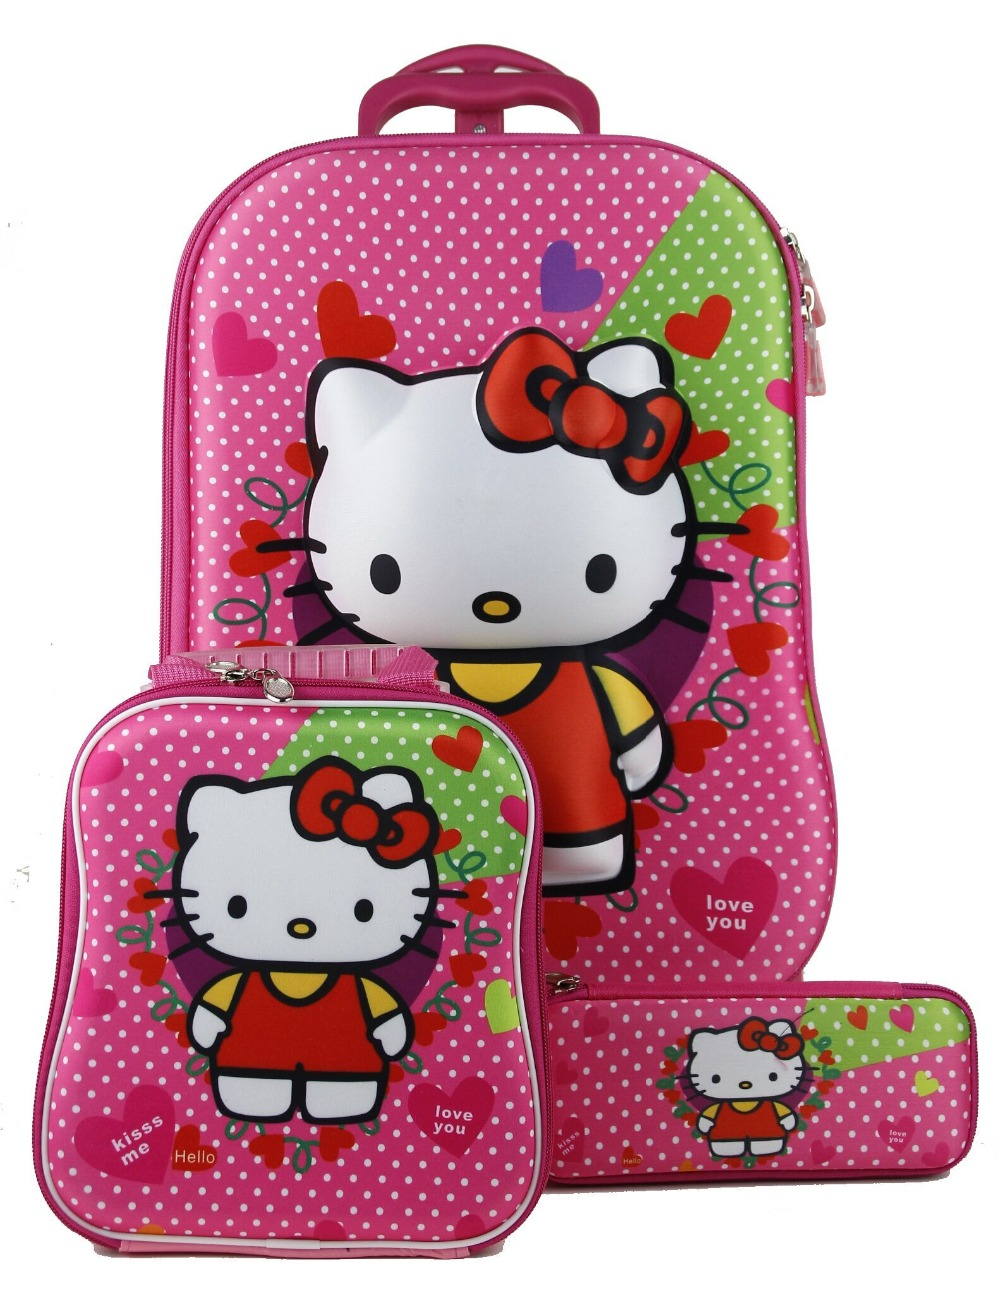 Luggage & Travel Bags Brand Hello Kitty Cartoon 18 Inch Students Travel Trolley Case Children Boarding Box Anime Girl Luggage Child Rolling Suitcase Numerous In Variety